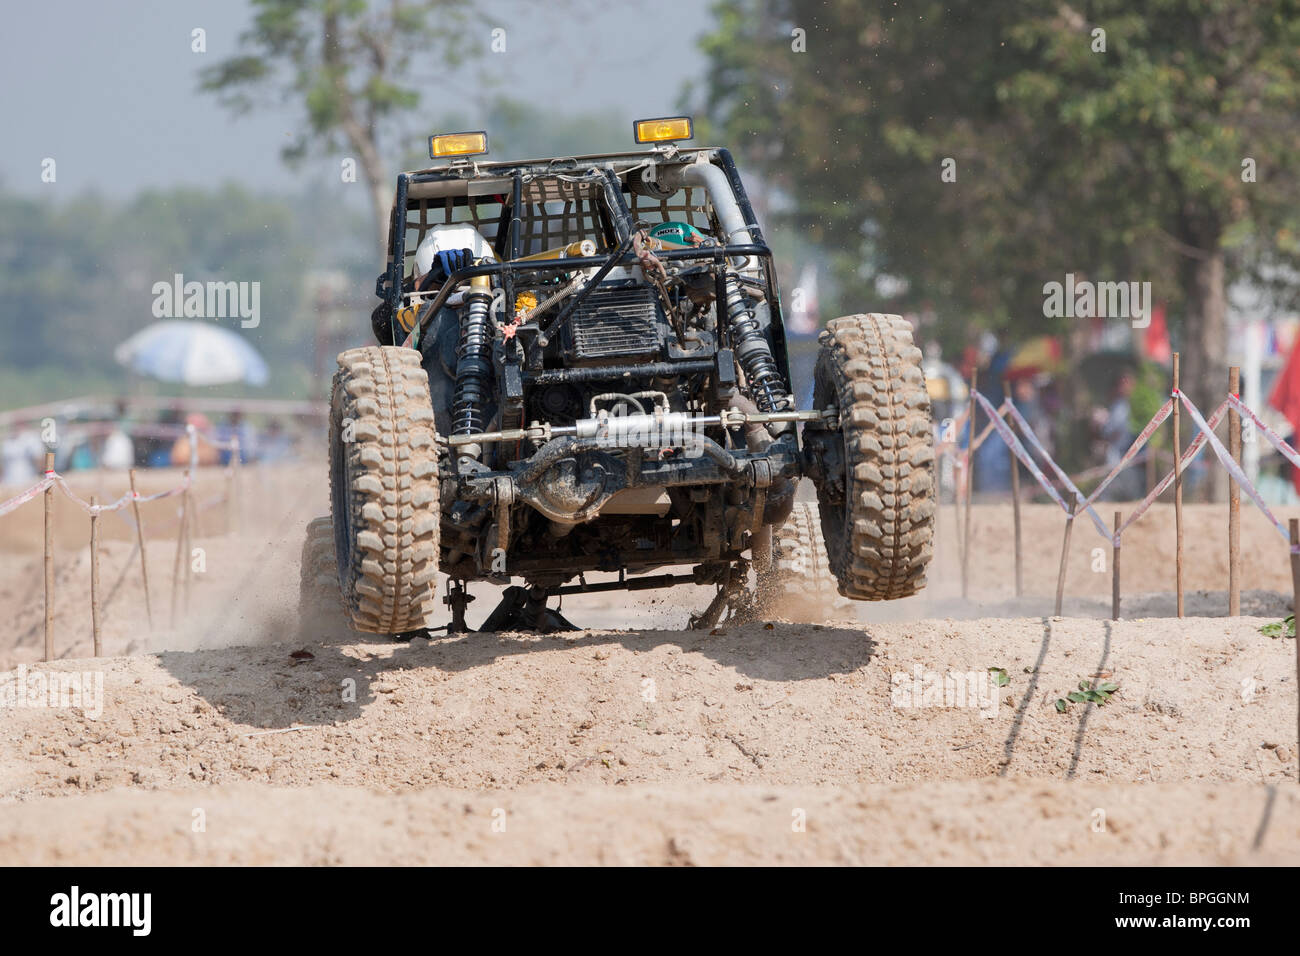 Off-road dune buggy competing in the mud Stock Photo